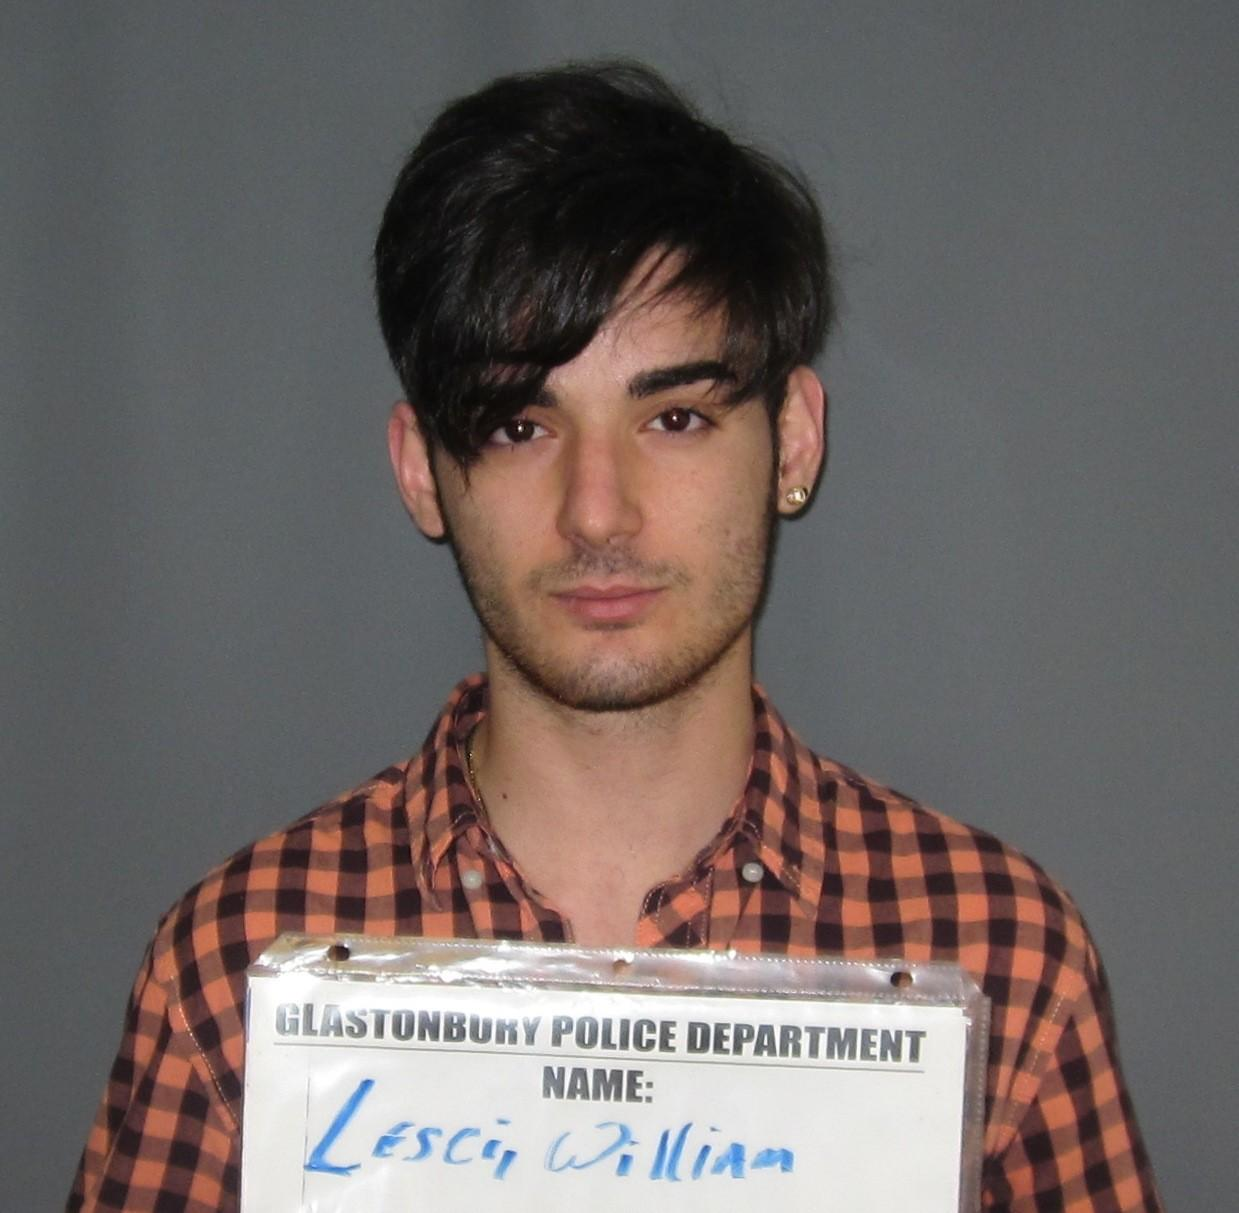 William Lesci was charged with second-degree breach of peace, carrying a weapon on school grounds and carrying a weapon.